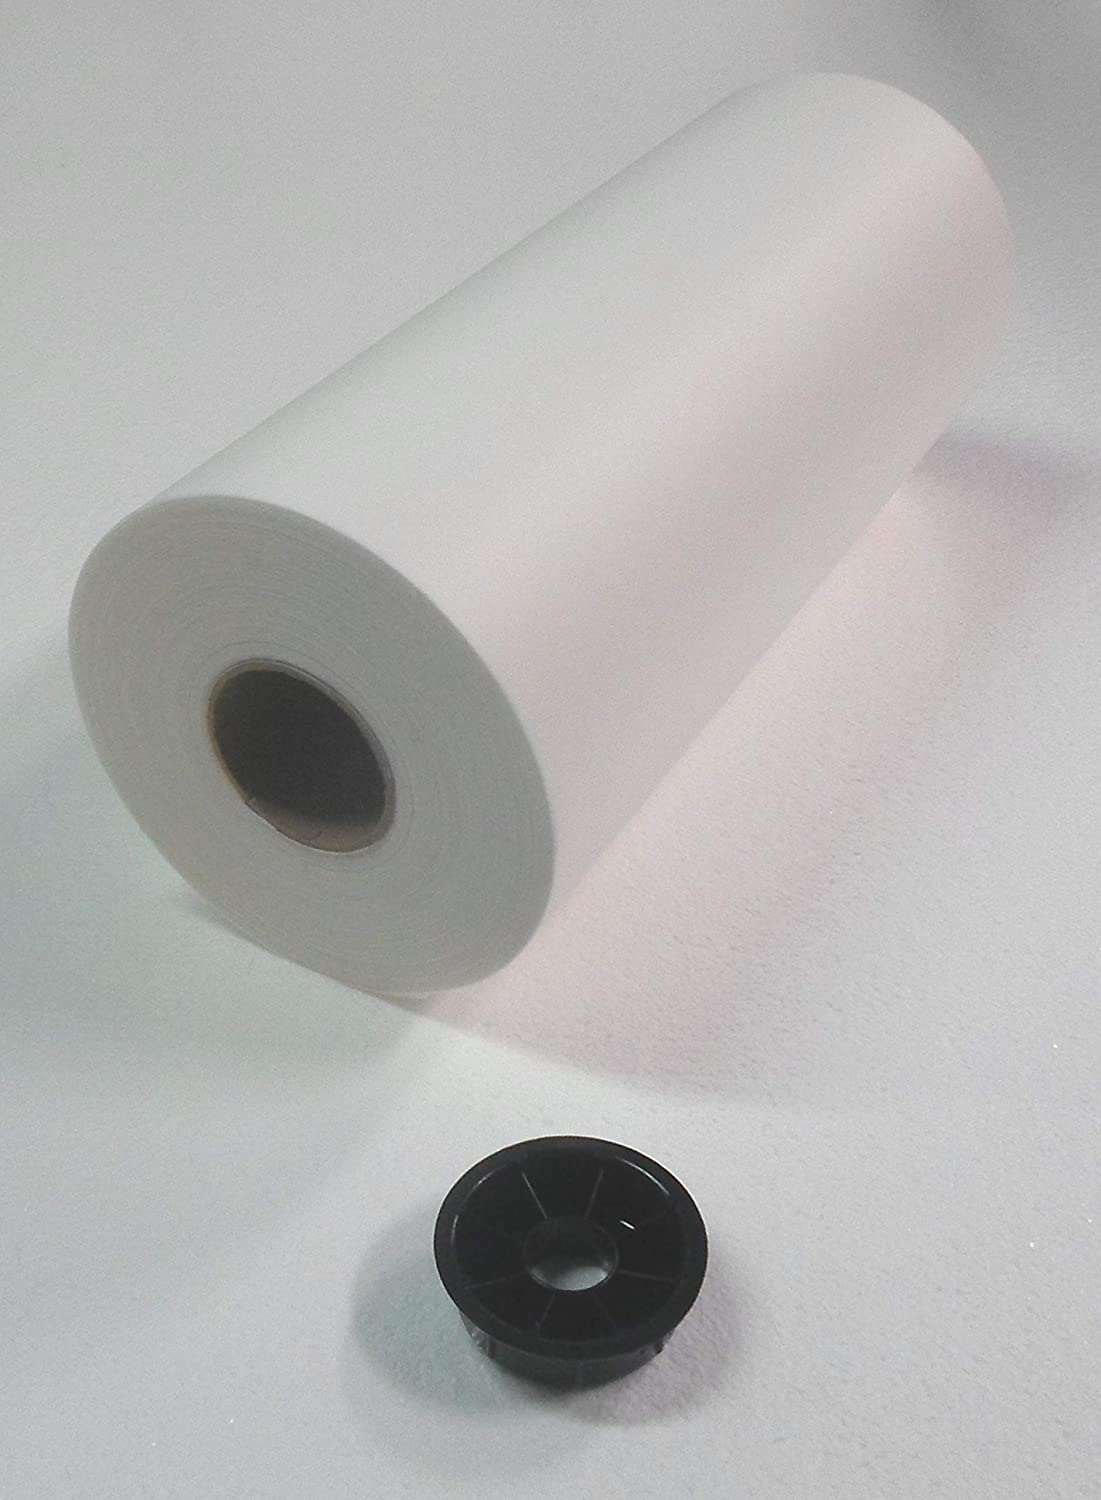 Coolant Filter Paper Roll 20 X 200 Yds 3 Id Core 20 Micron Rayon Polyester Amazon Com Industrial Scientific